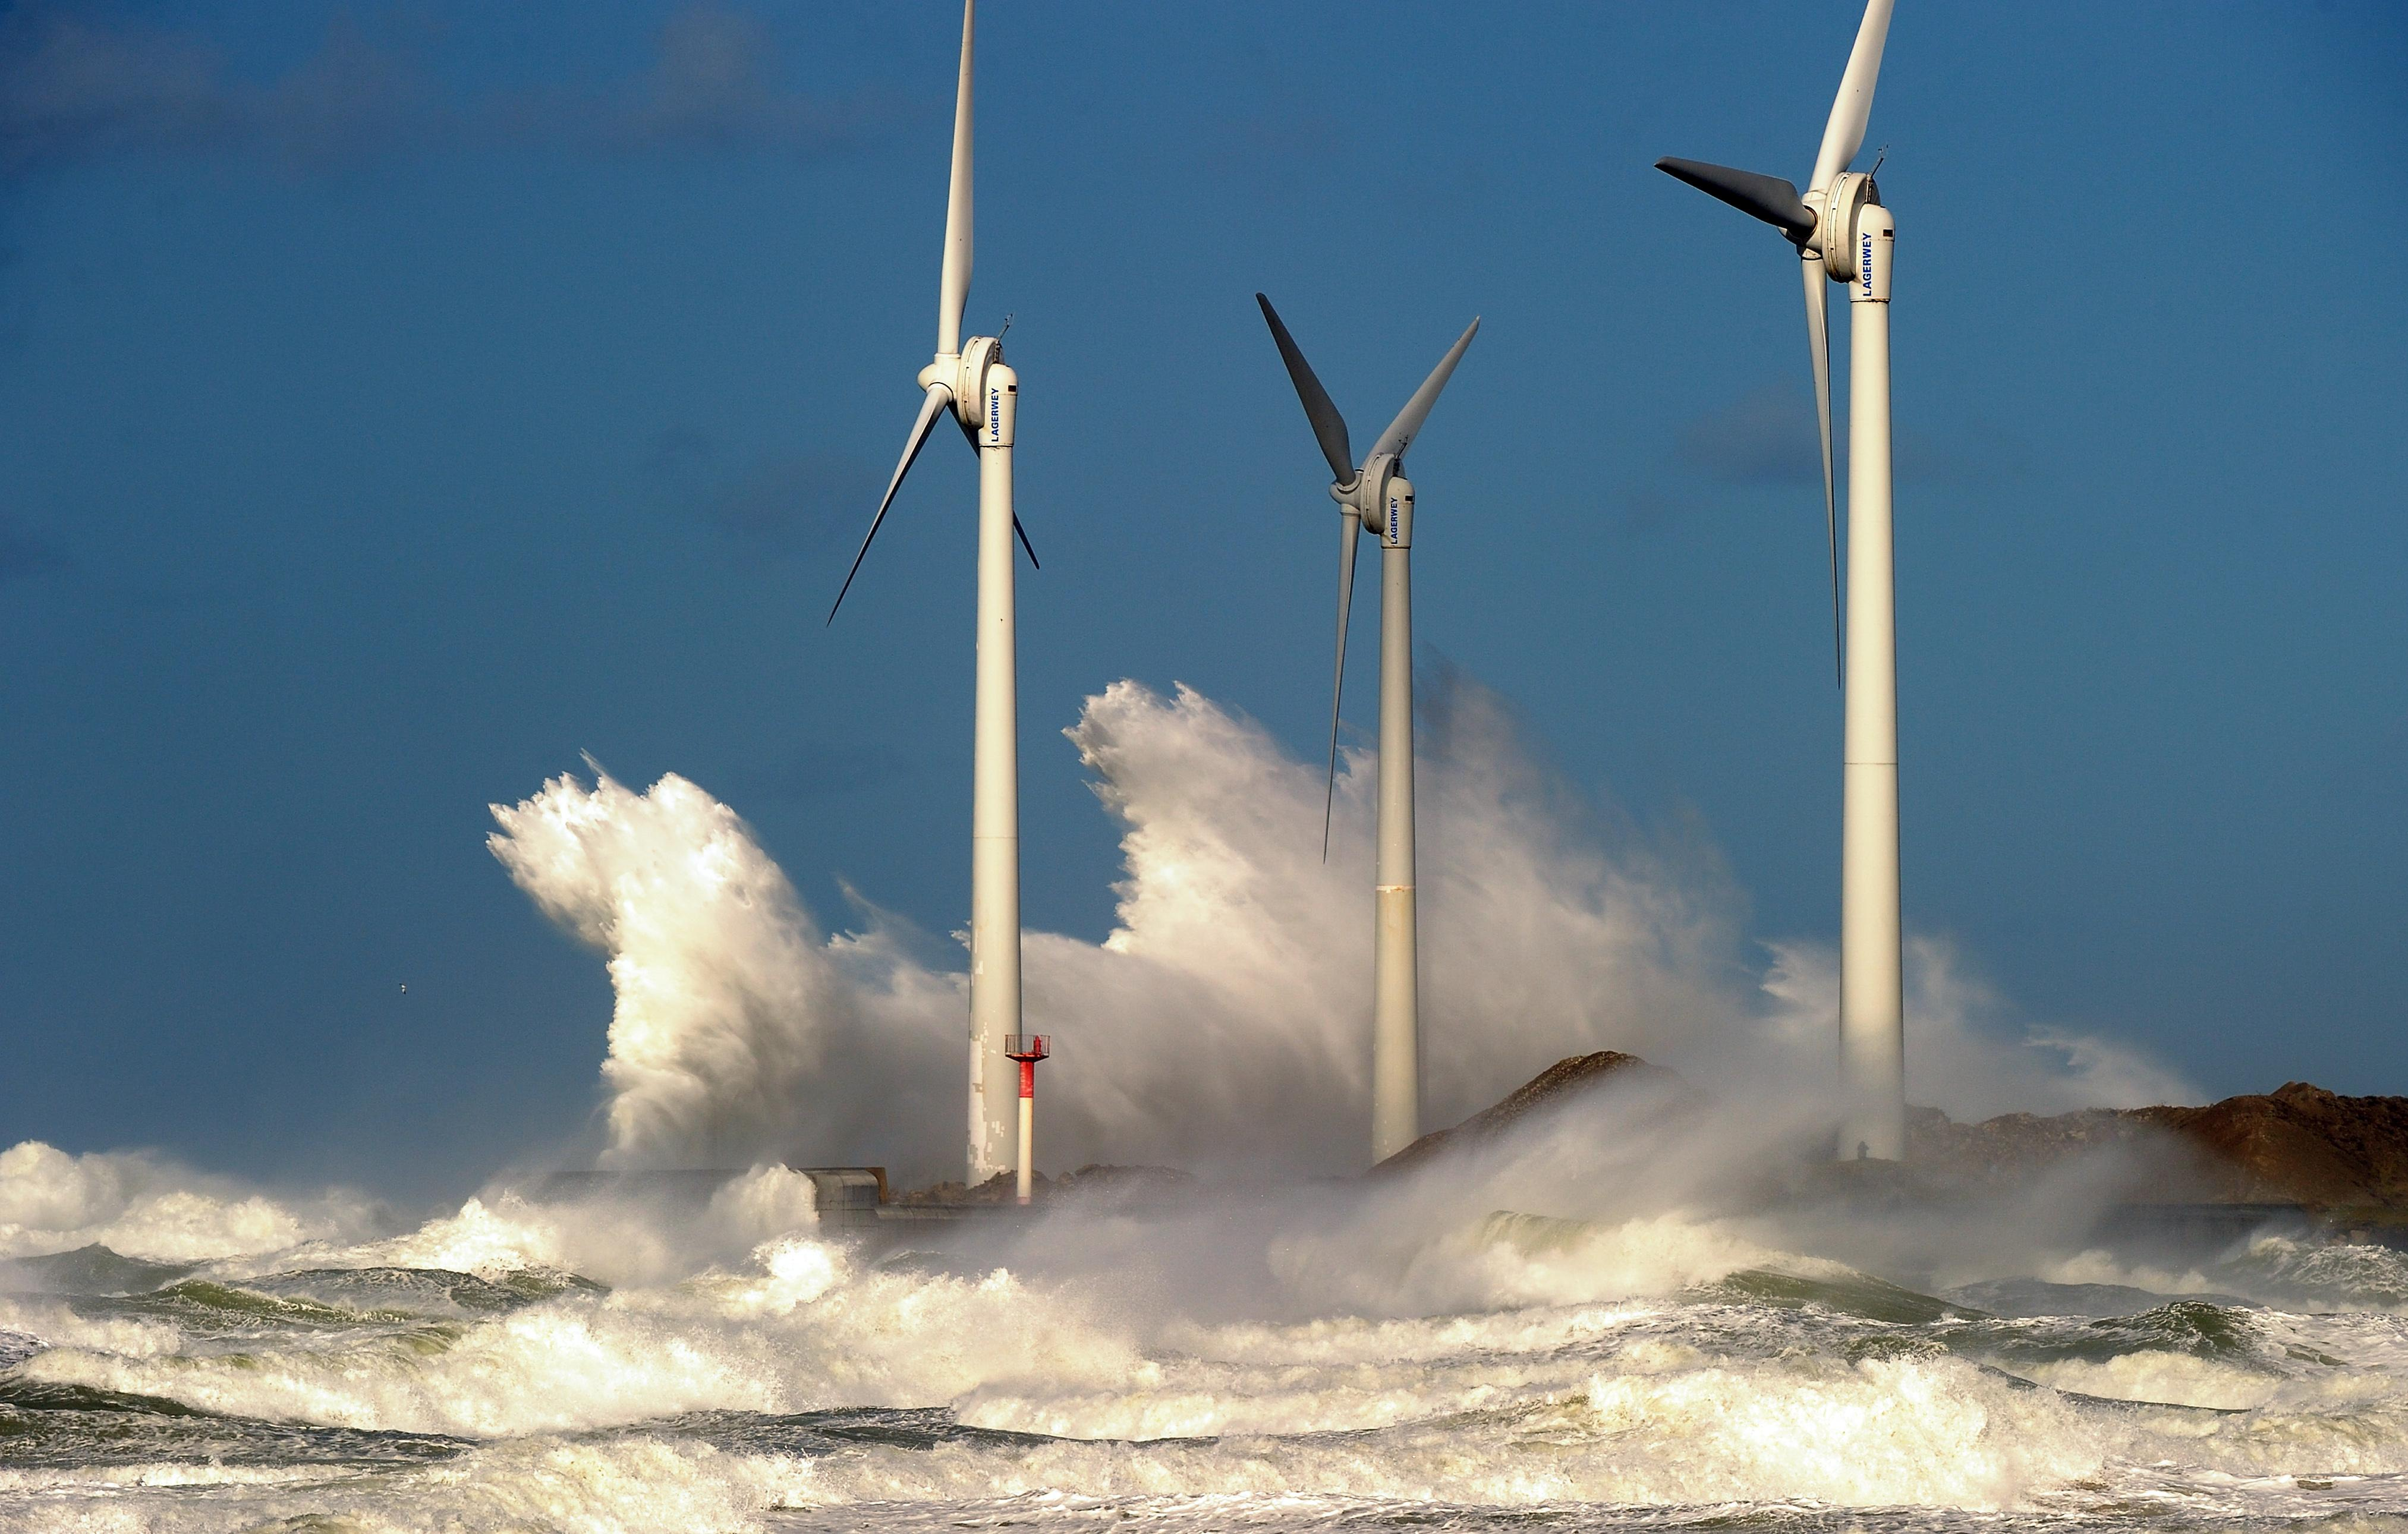 Waves break on a jetty holding wind turbines in the Channel port of Boulogne-sur-mer, France.